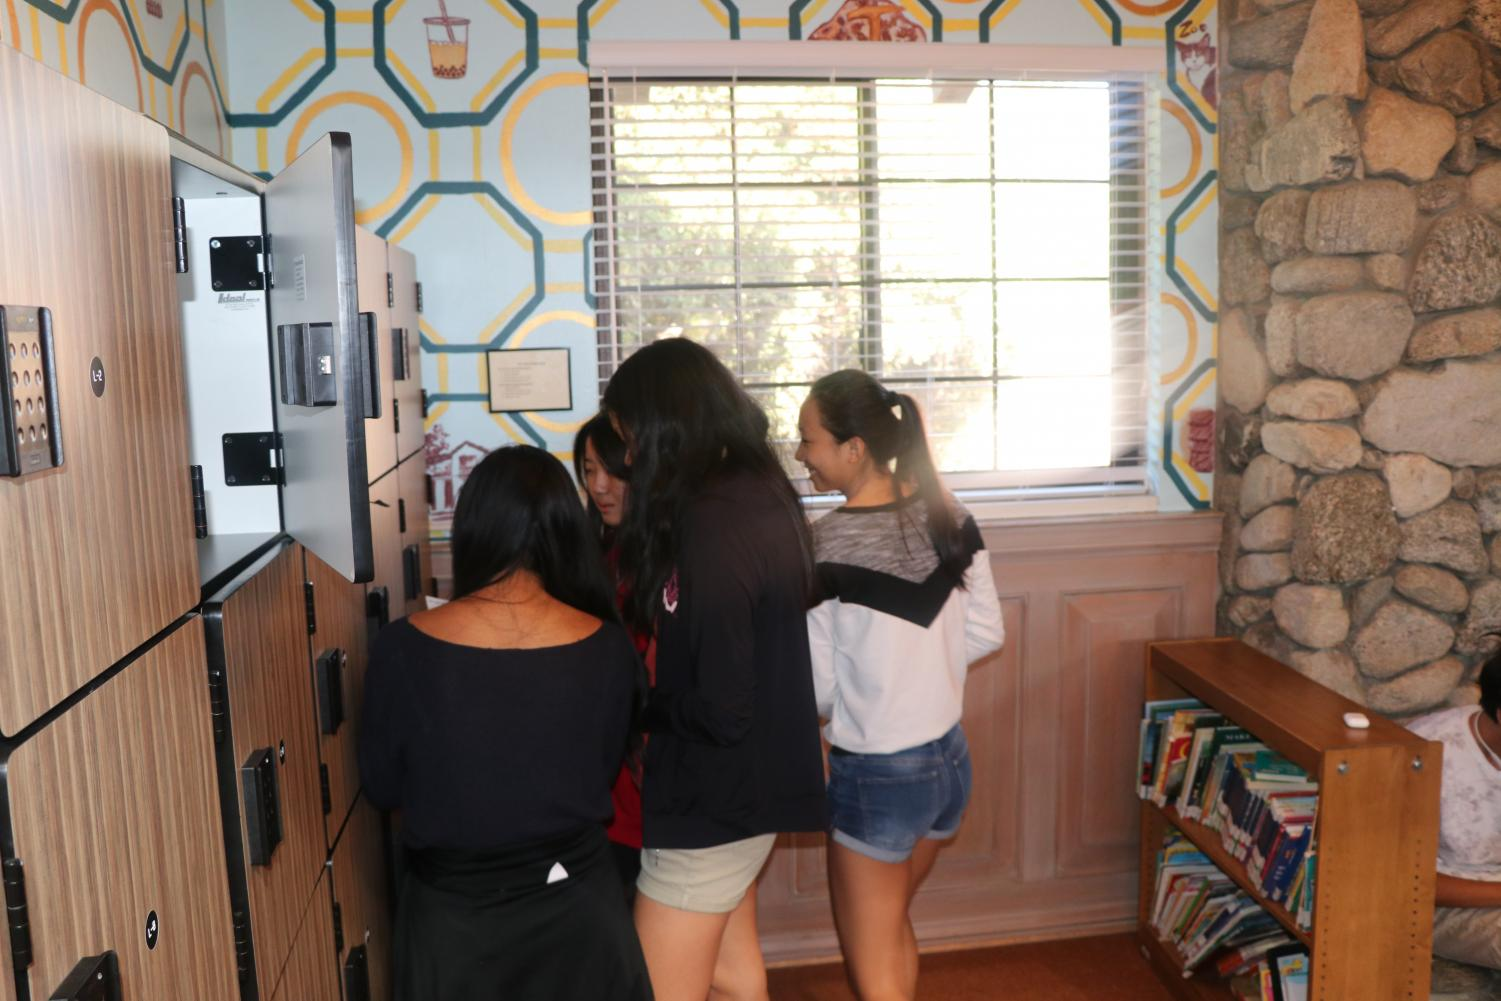 Nina Luo ('22), Leeann Shu ('22), Haley Colorado ('22), and Nancy Li ('22) just beginning their game at the library lockers.